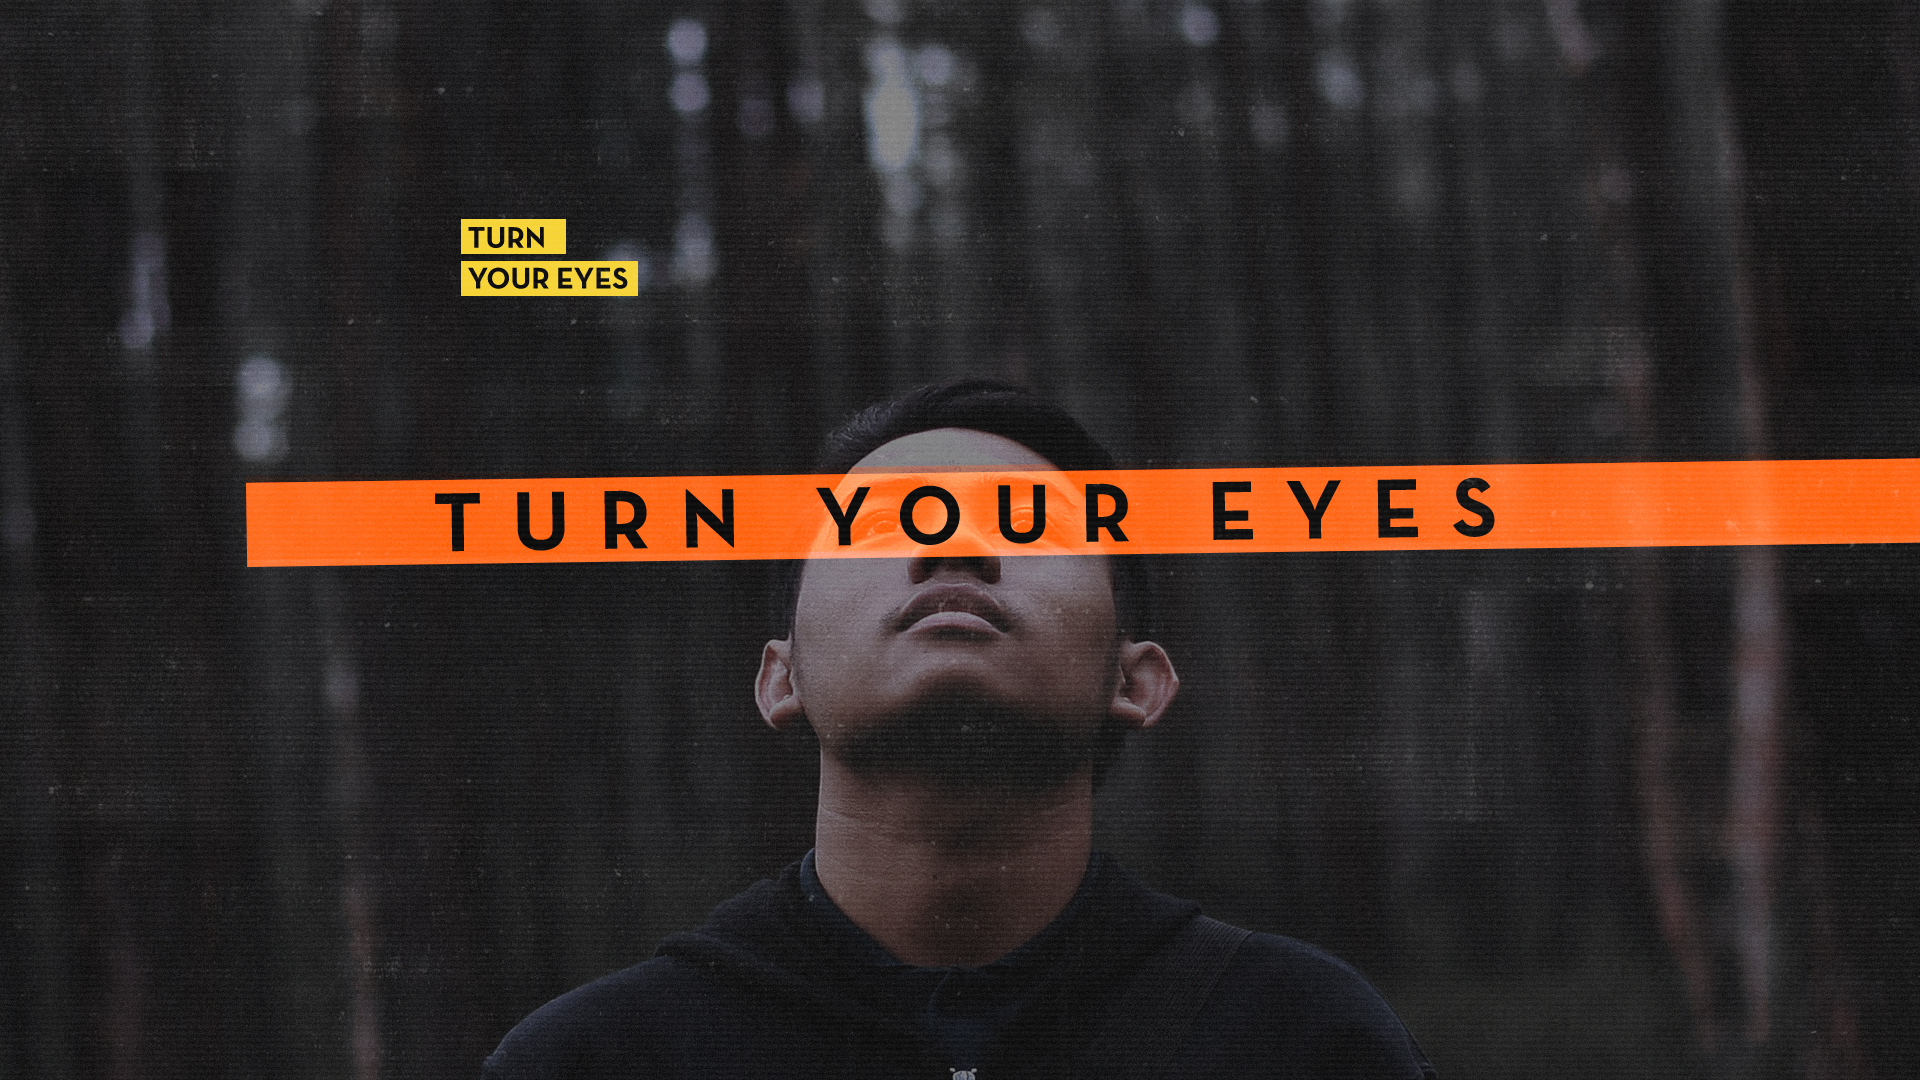 TURN YOUR EYES